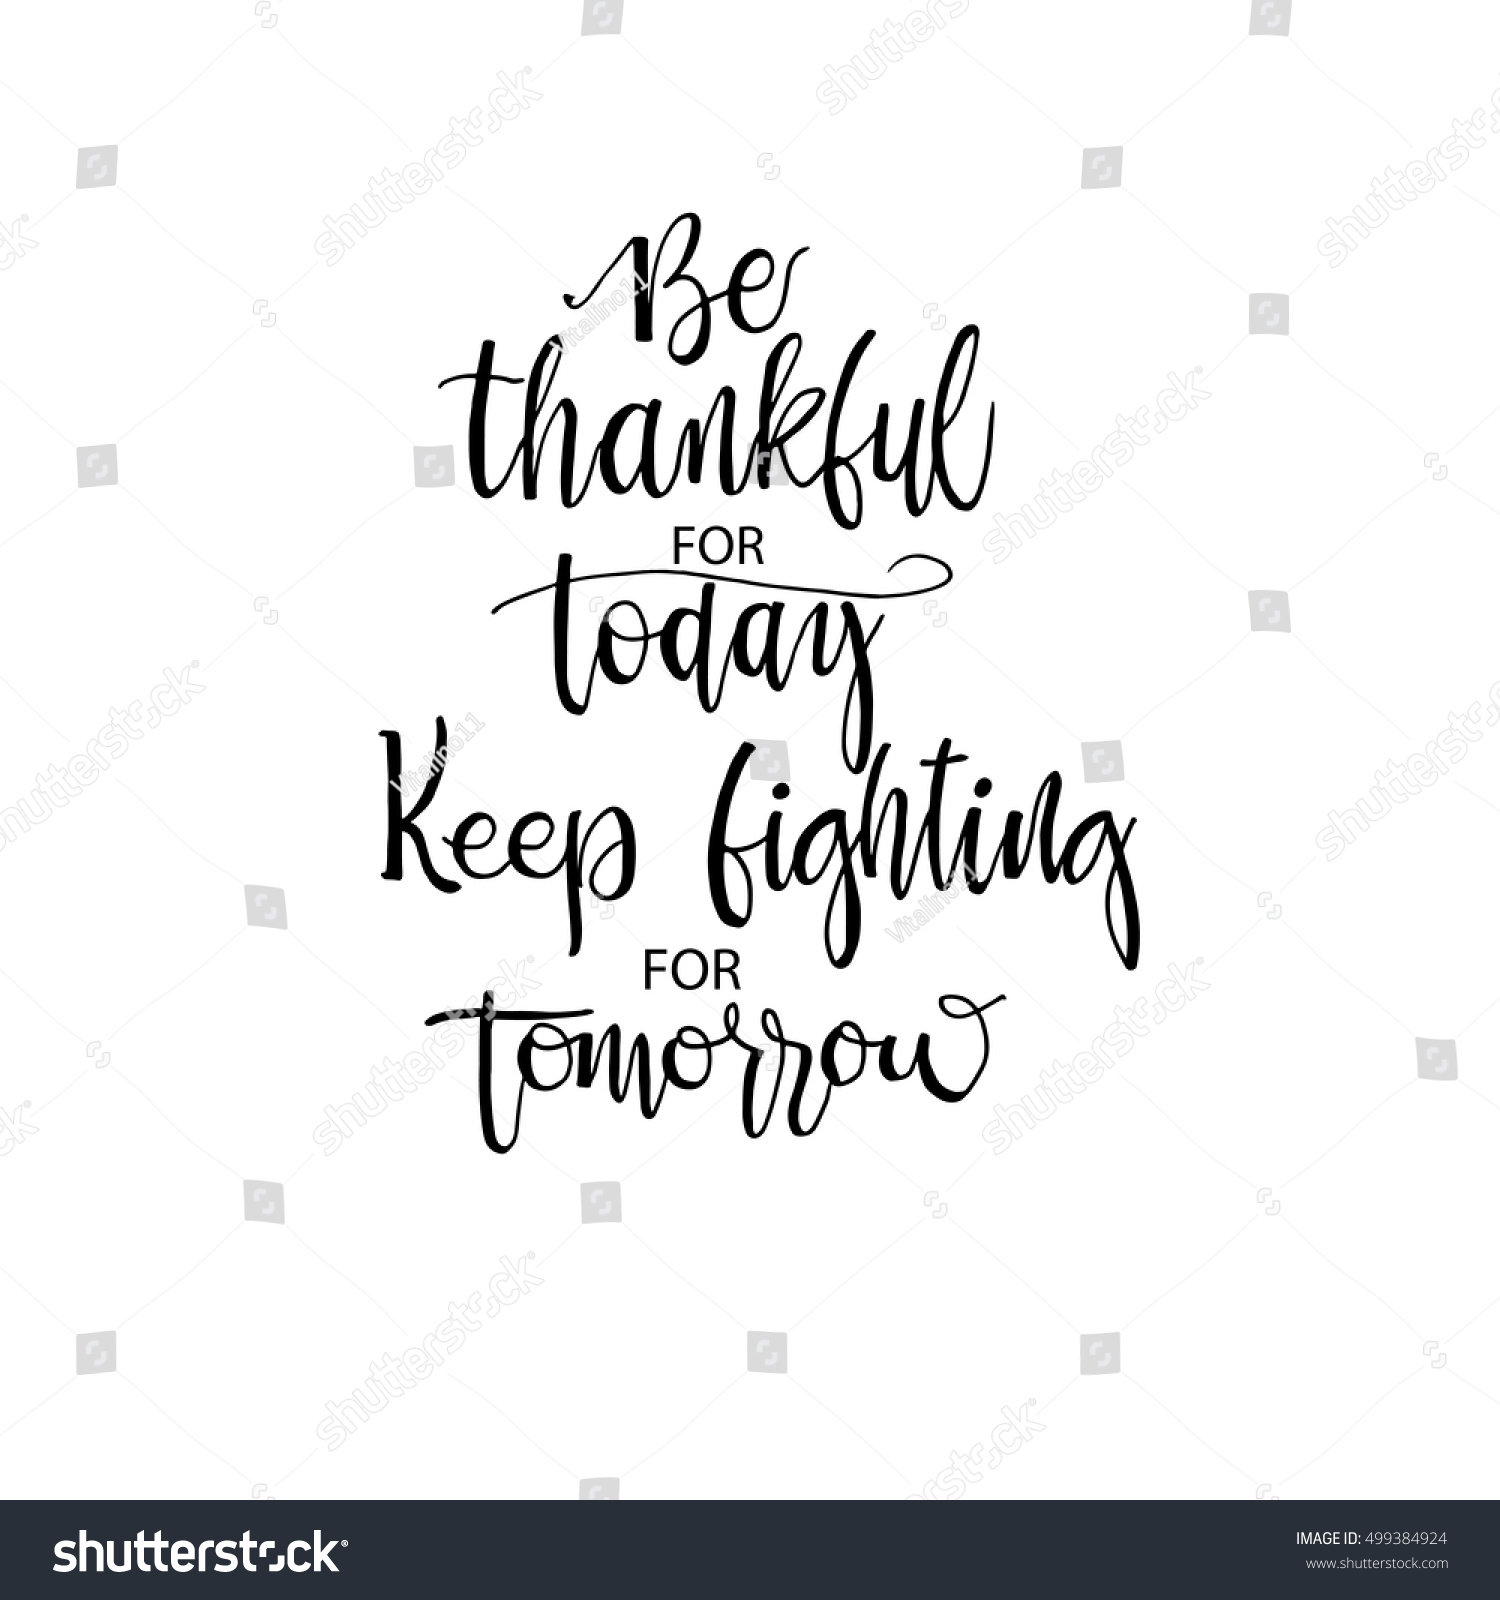 Be Thankful Today Keep Fighting Tomorrow Stock Vector Royalty Free